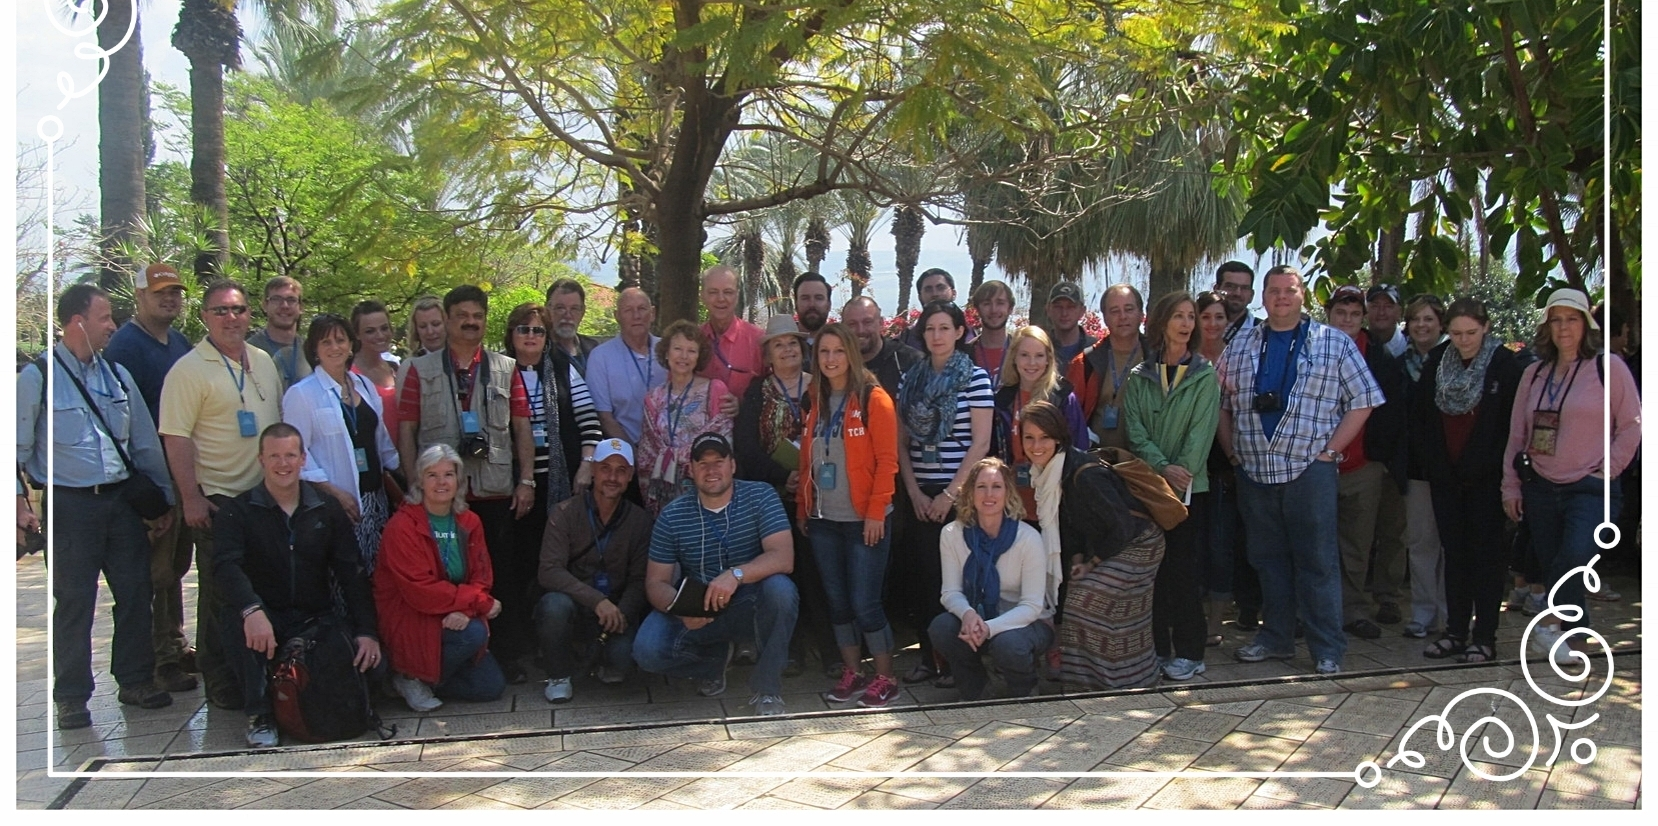 US New Spring Church group in Galilee, 2014